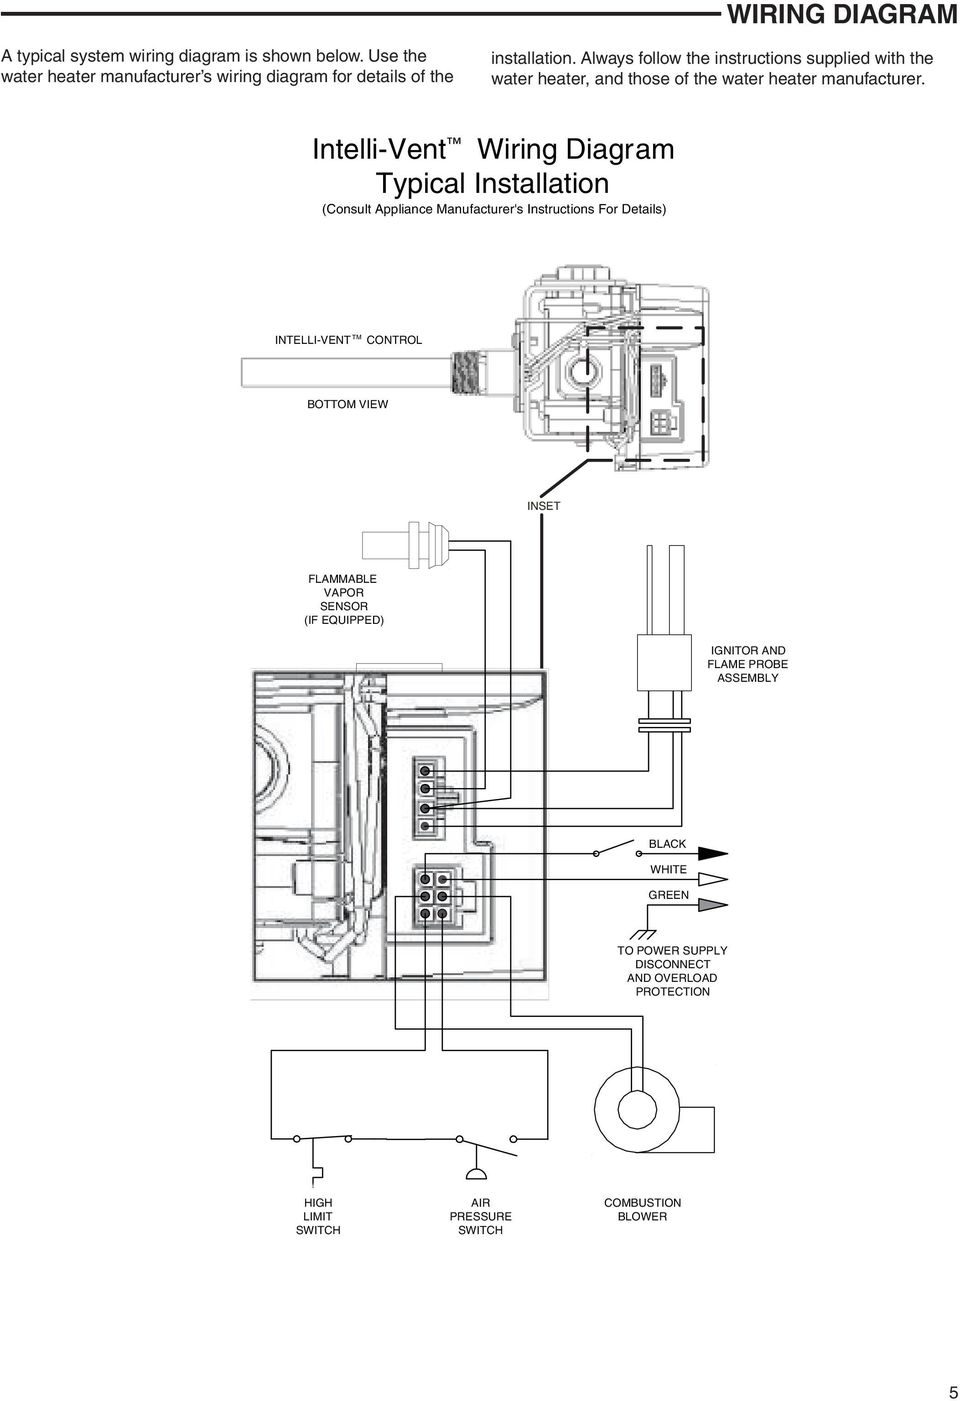 air pressure switch wiring diagram c bus white rodgers intellivent manual intelli vent typical installation consult appliance manufacturer s instructions for details